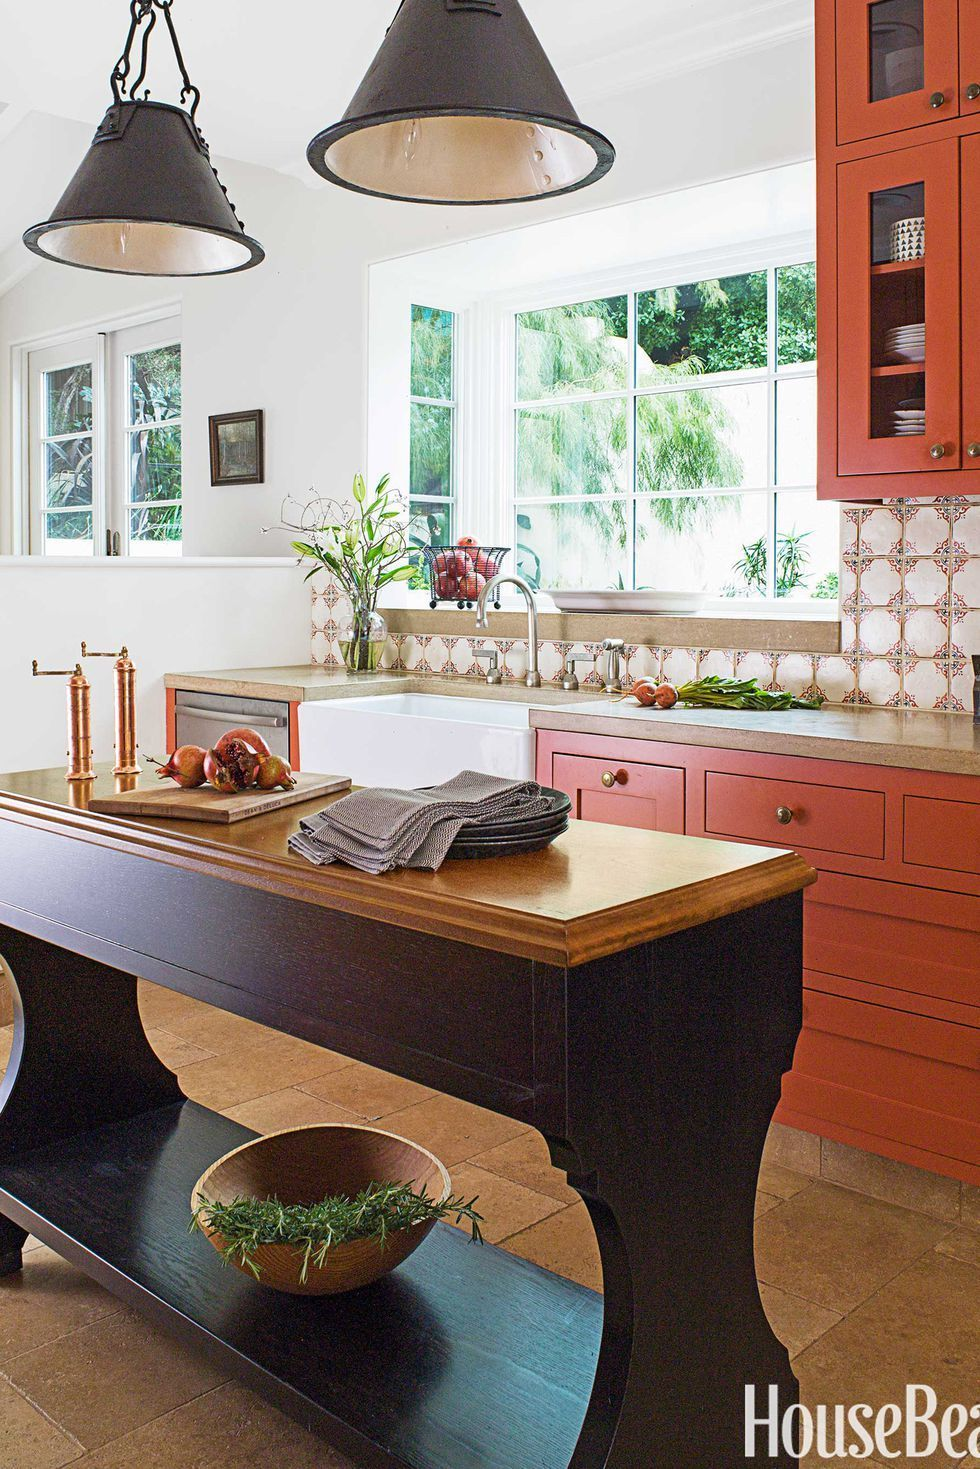 10 Alternative Kitchen Cabinet Colors Everyone S Loving In 2020 Burnt Orange Kitchen Orange Kitchen Kitchen Cabinet Colors